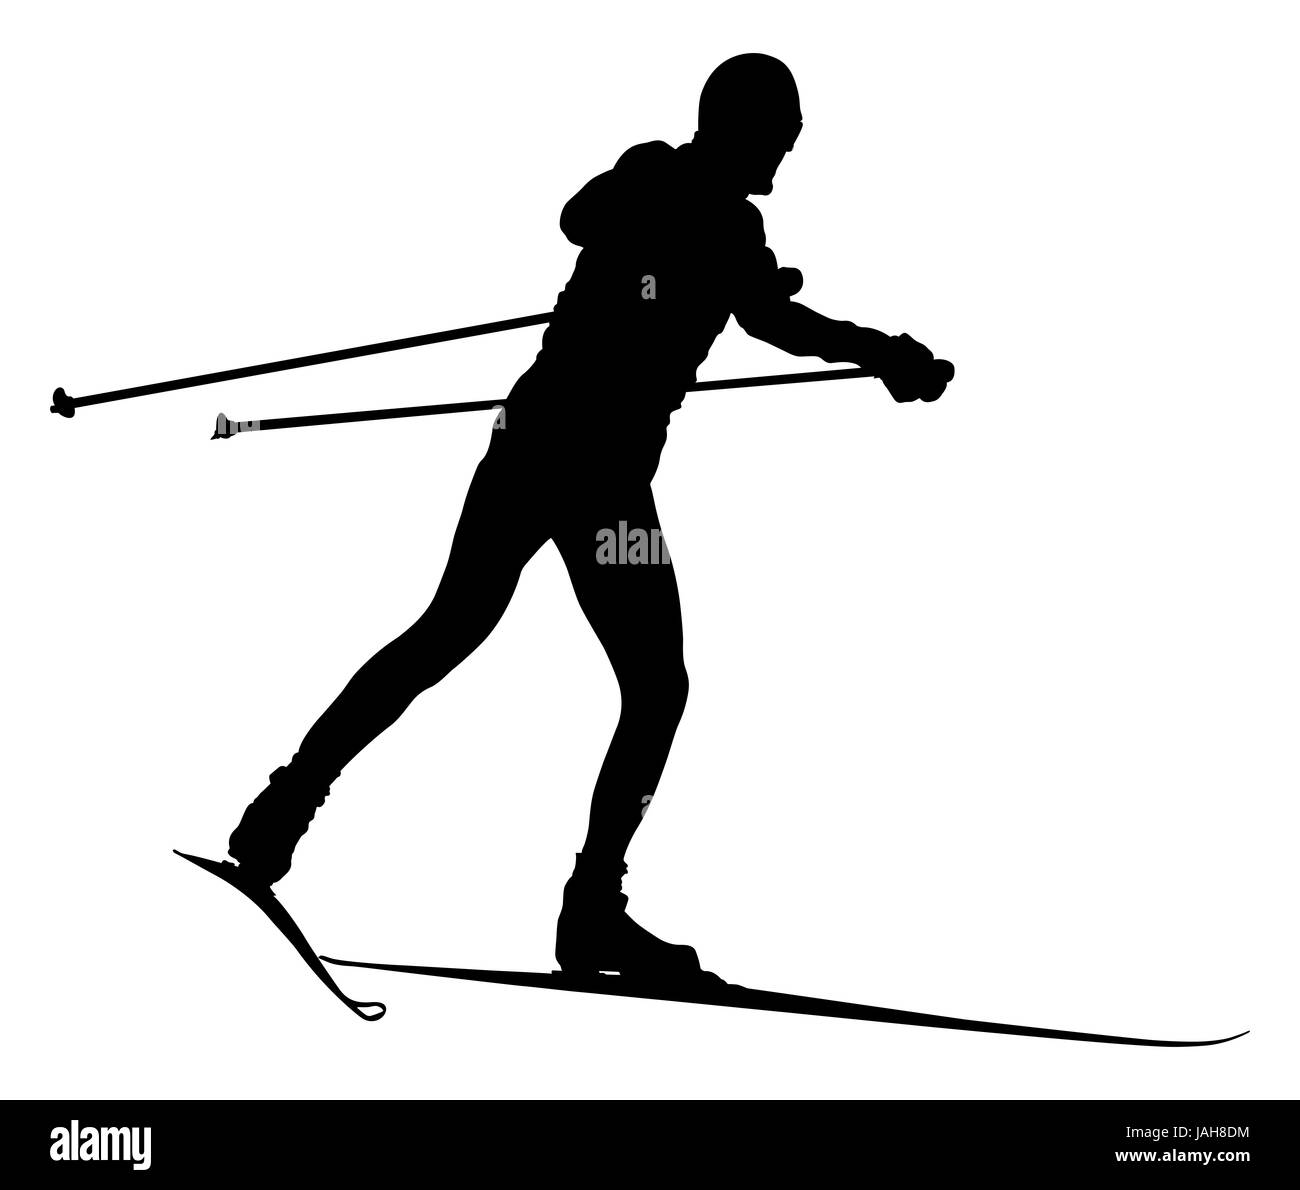 Black Silhouette Male Skier Cross Country Skiing